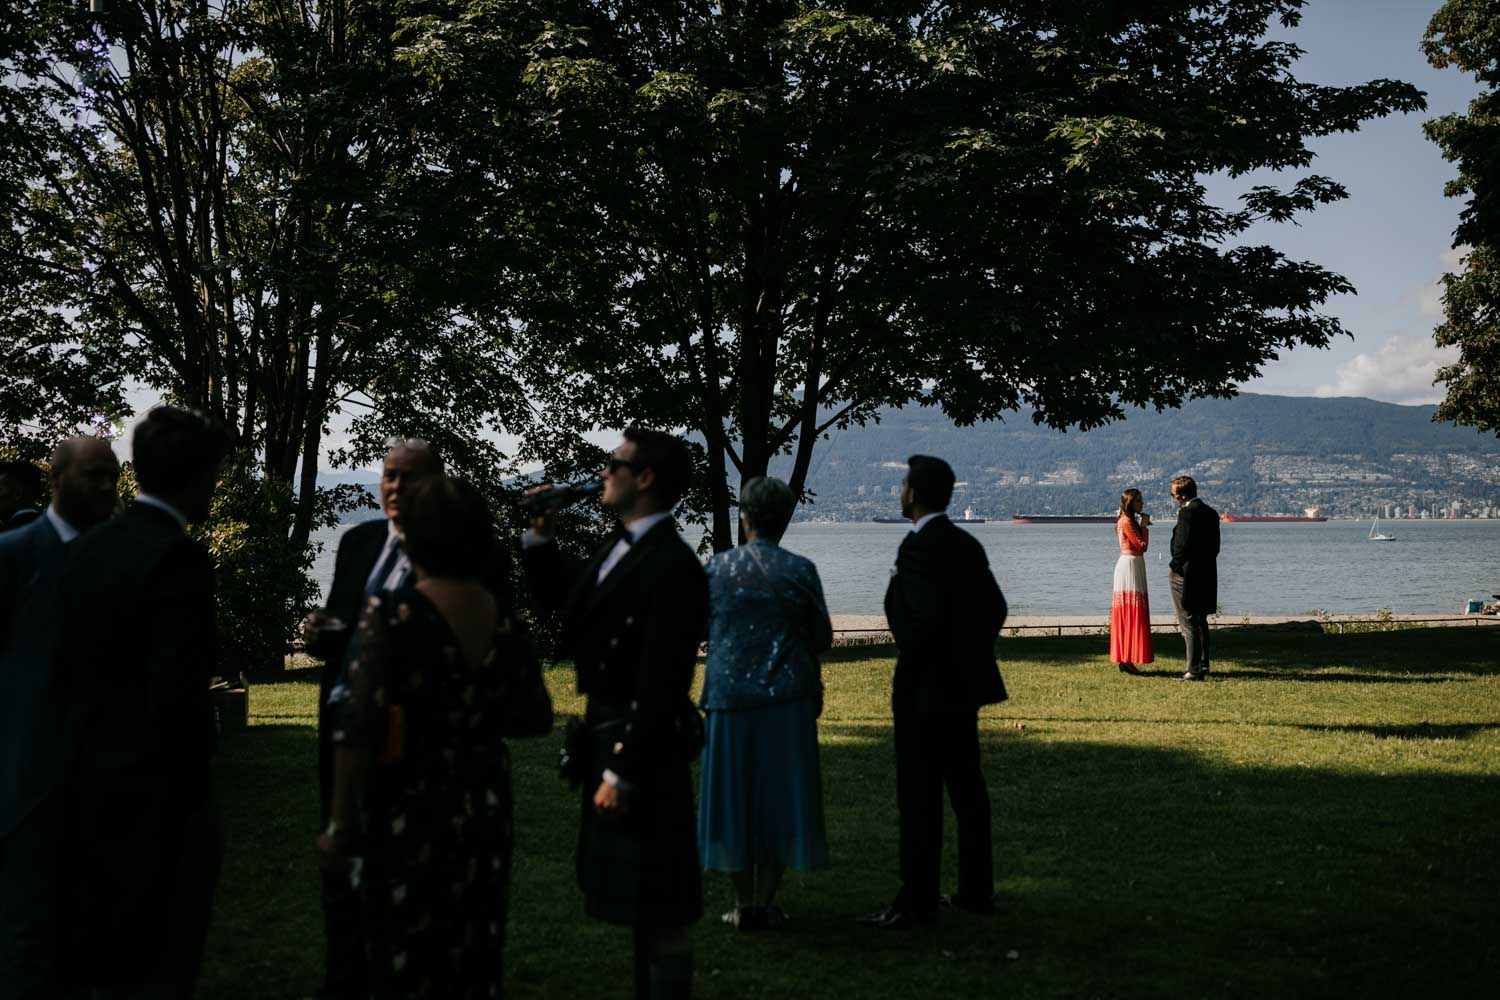 Wedding guest in the sun on the lawn overlooking the sea during cocktail hour at Brock House Restaurant Wedding Venue on Jericho Beach